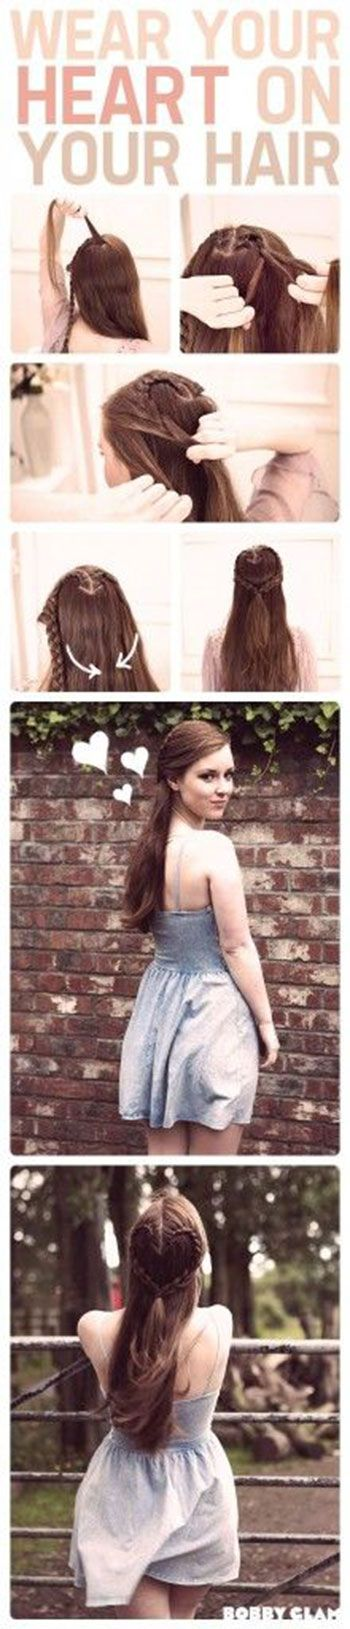 Easy Valentines Day Hairstyle Tutorials 2014 For Beginners Learners 1 Easy Valentines Day Hairstyle Tutorials 2014 For Beginners & Learners